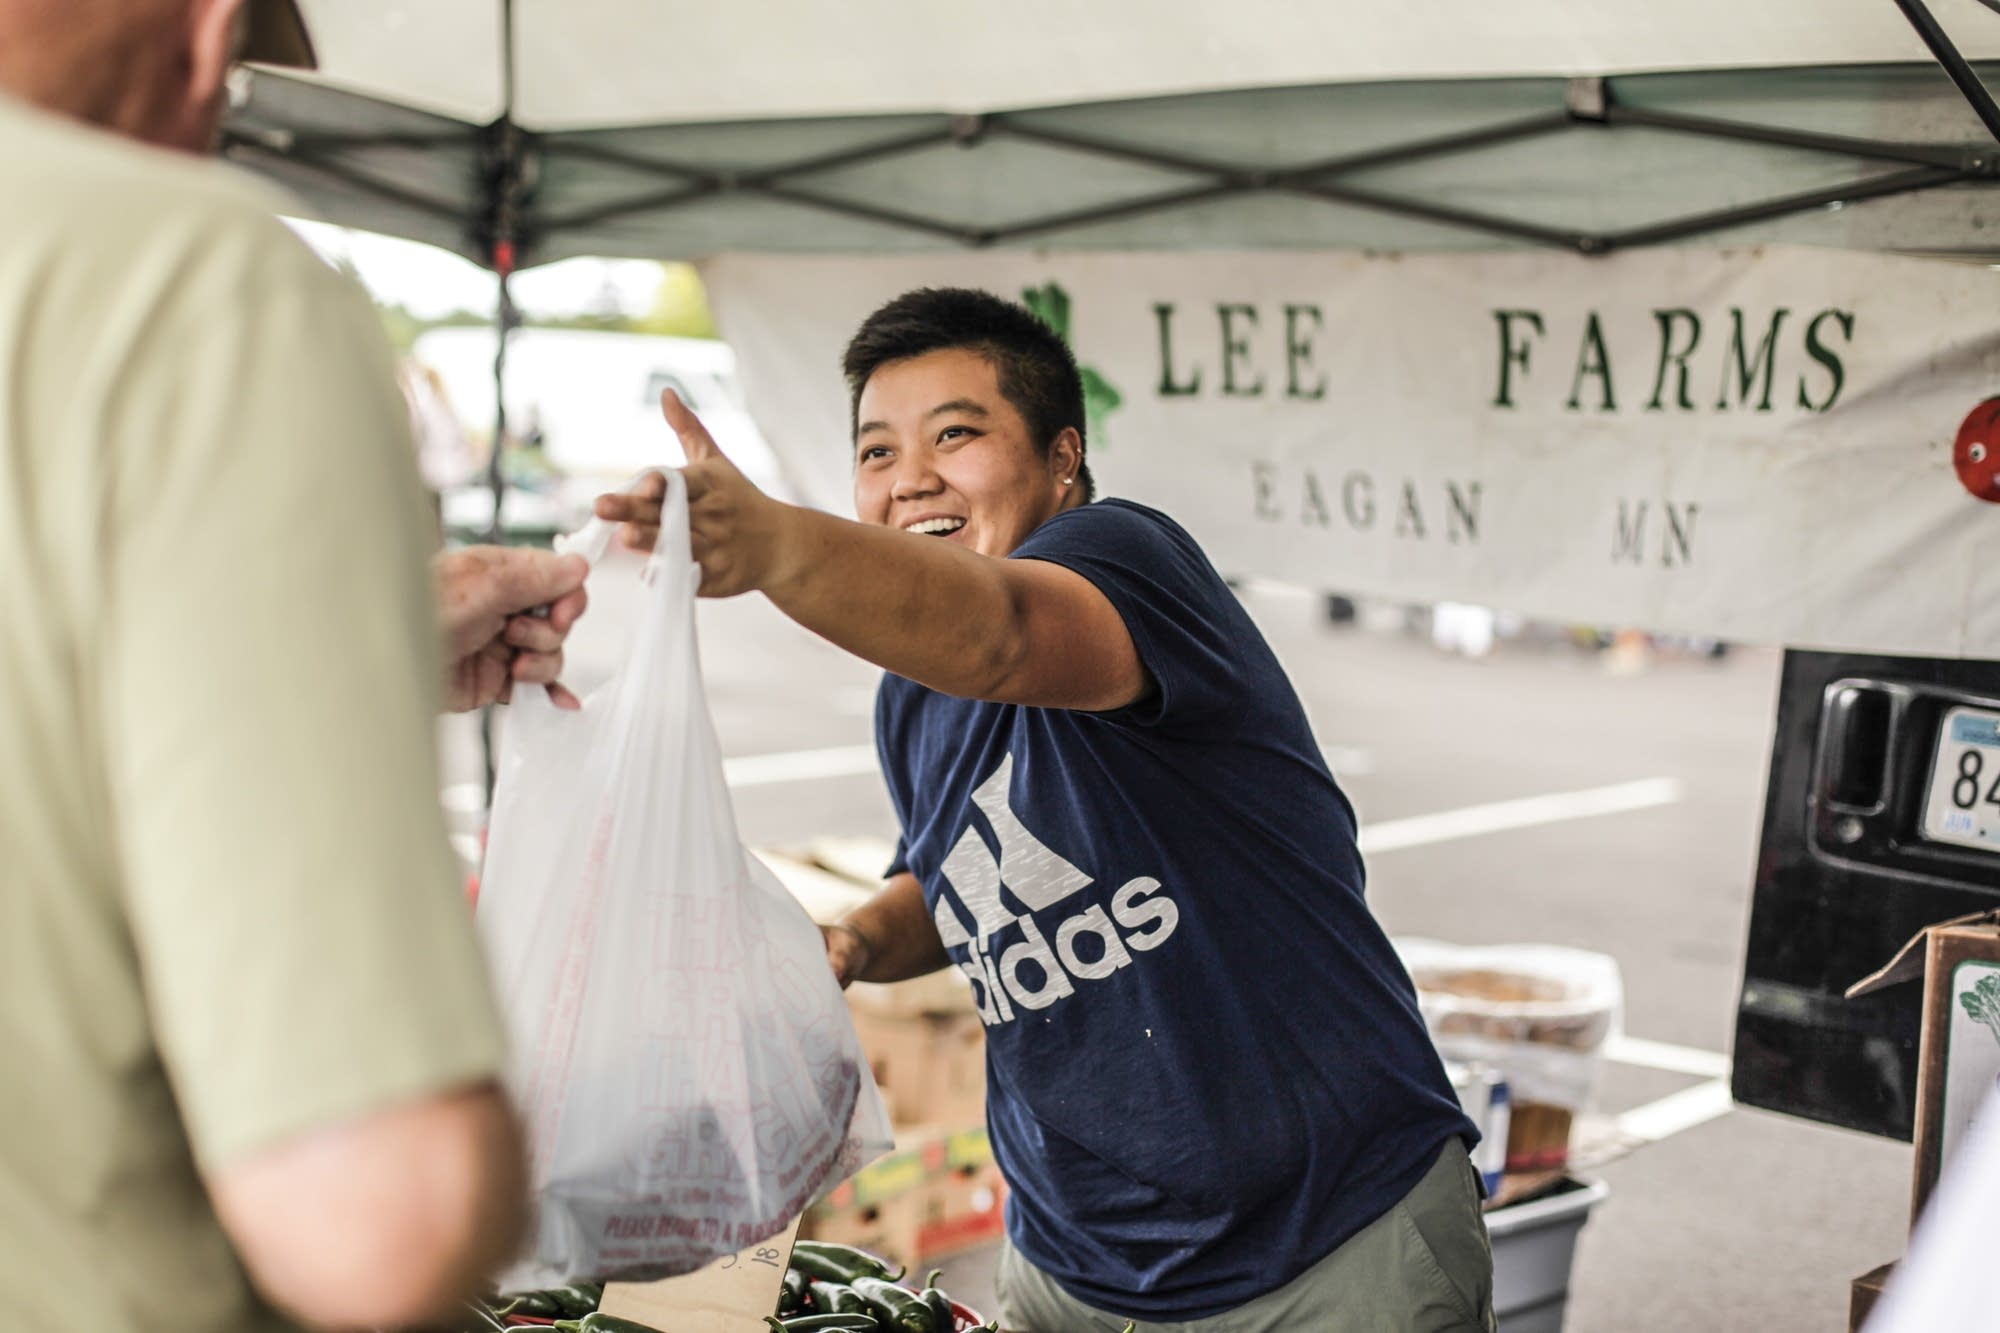 Mao Lee sells produce at the Maple Grove Farmers Market.